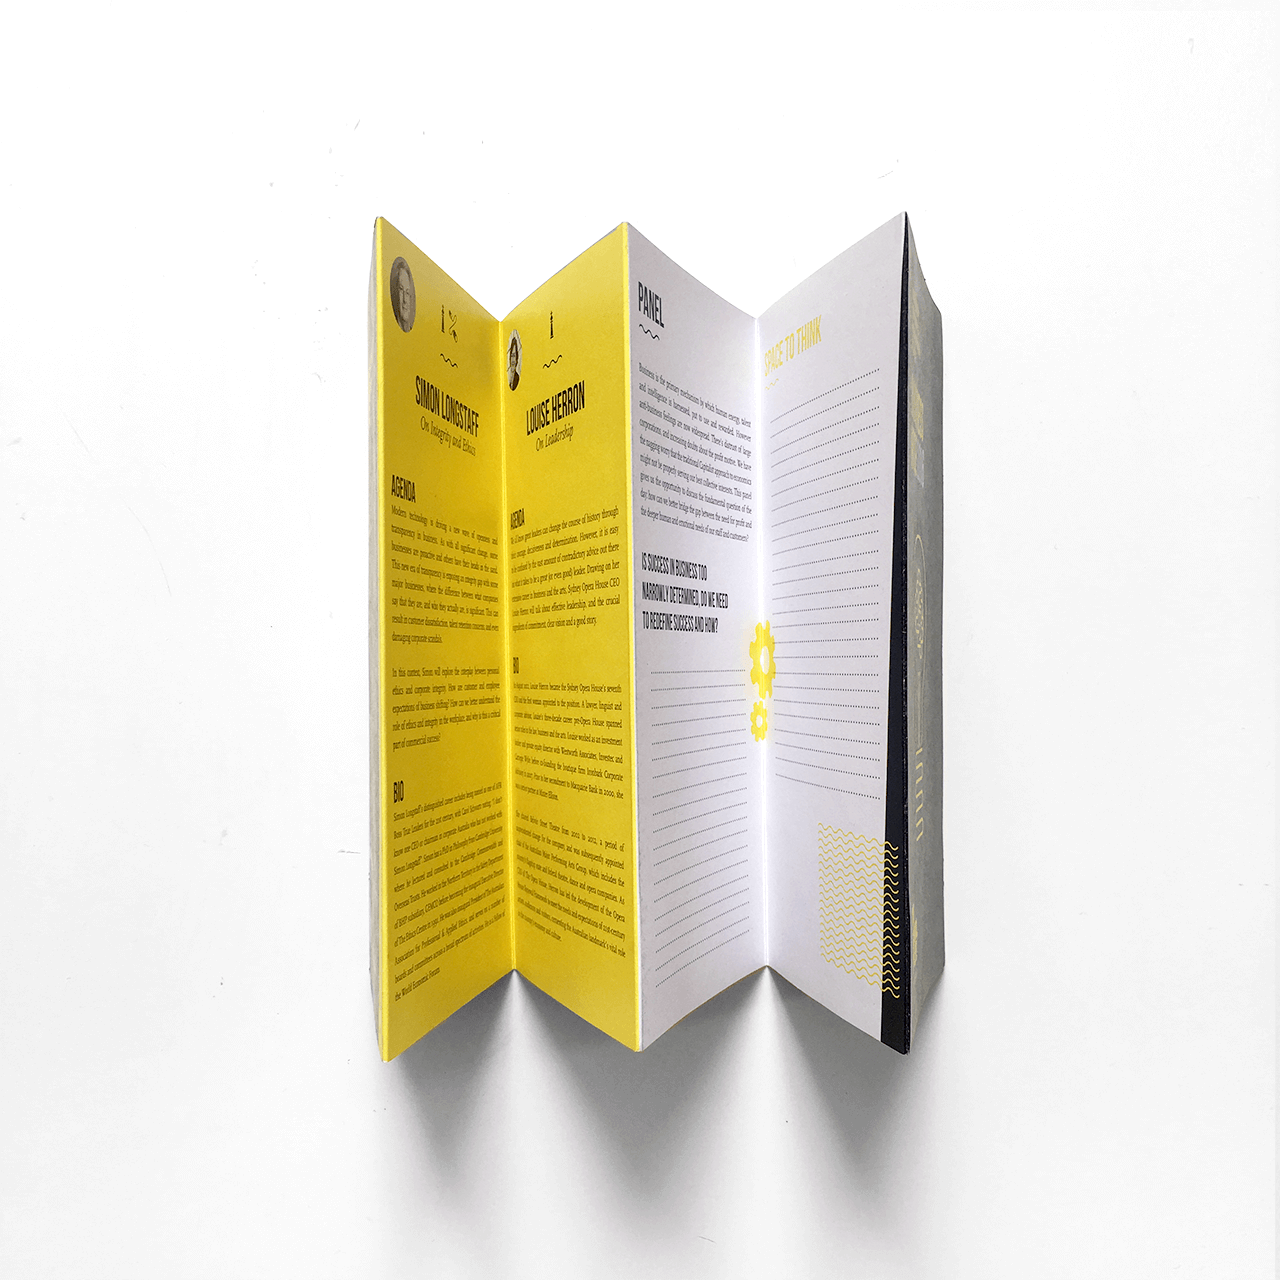 Graphic design for the Business Wise conference program